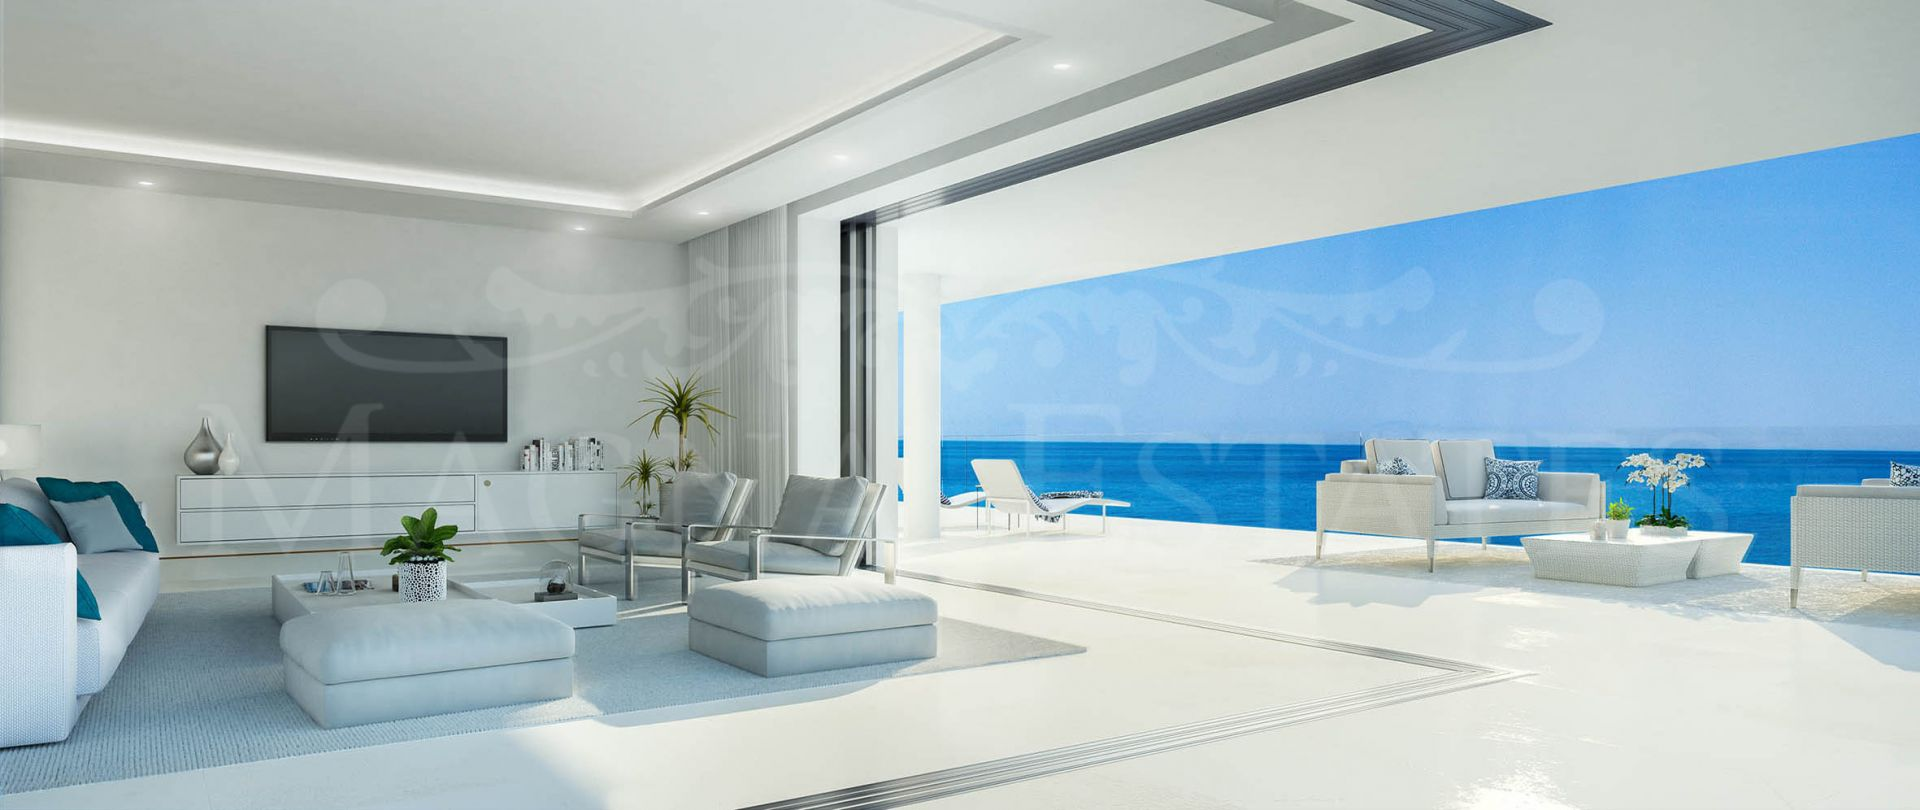 Exceptional and exclusive first line beachfront apartment project on the New Golden Mile